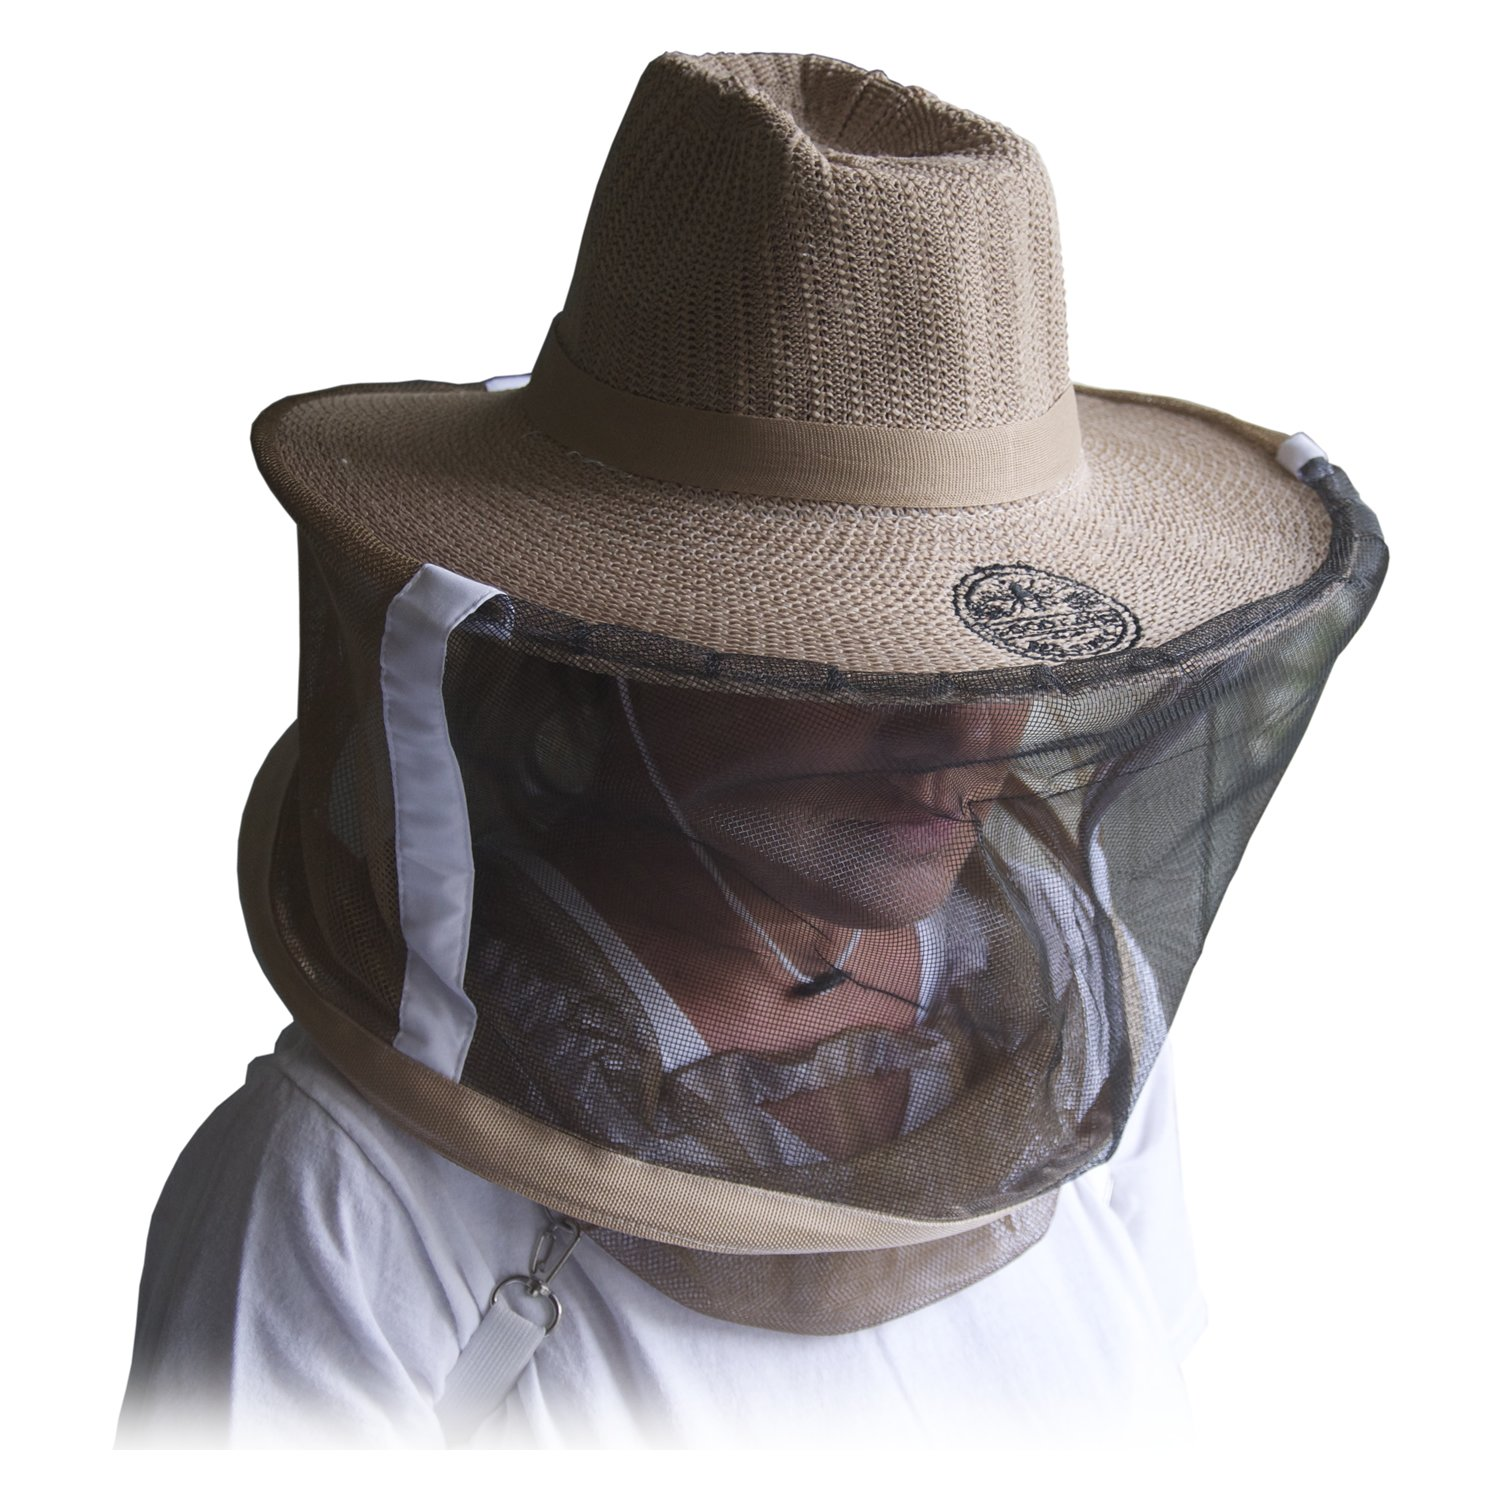 Natural Cotton Medium / Large Professional Beekeeping Beekeepers Hat Veil for Bee Protection During Beehive Maintenance by Goodland Bee Supply by GOODLAND BEE SUPPLY